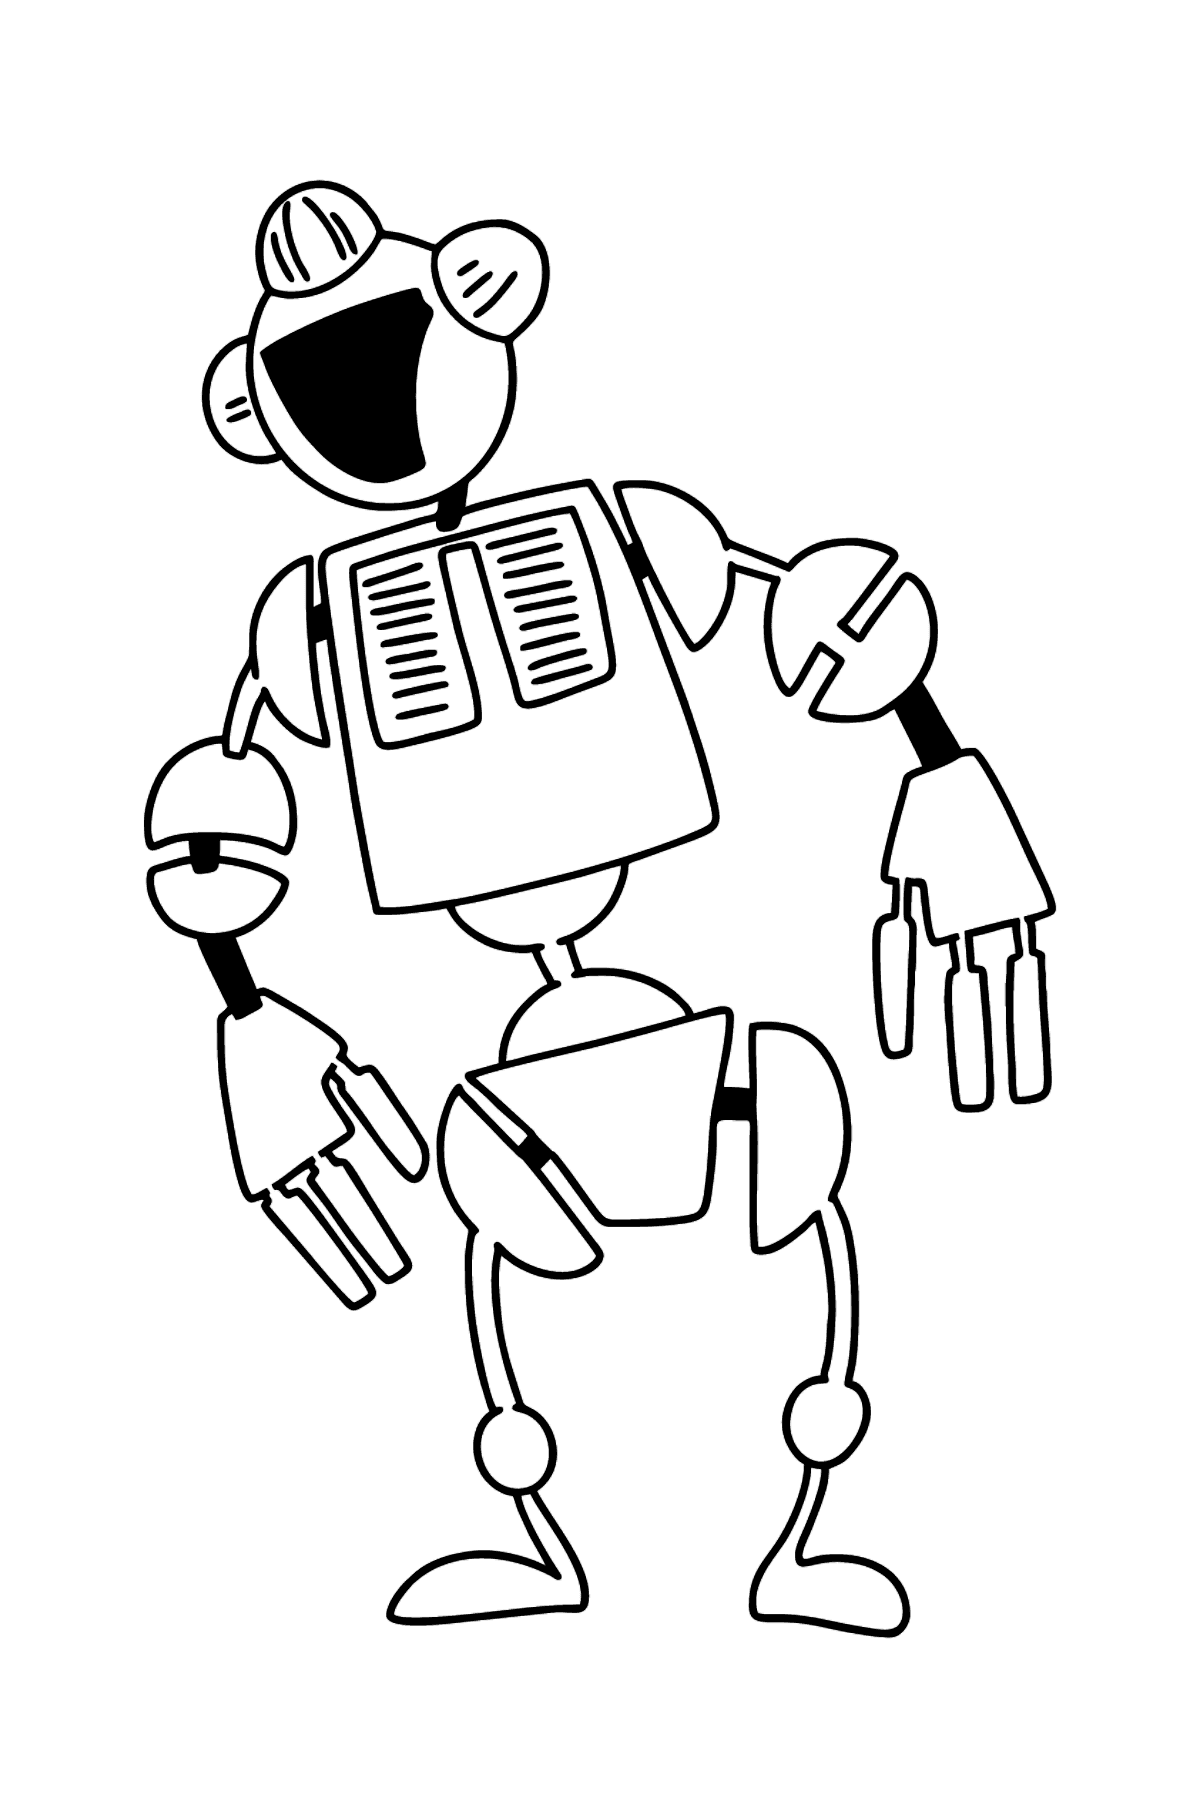 Robot coloring page - Coloring Pages for Kids